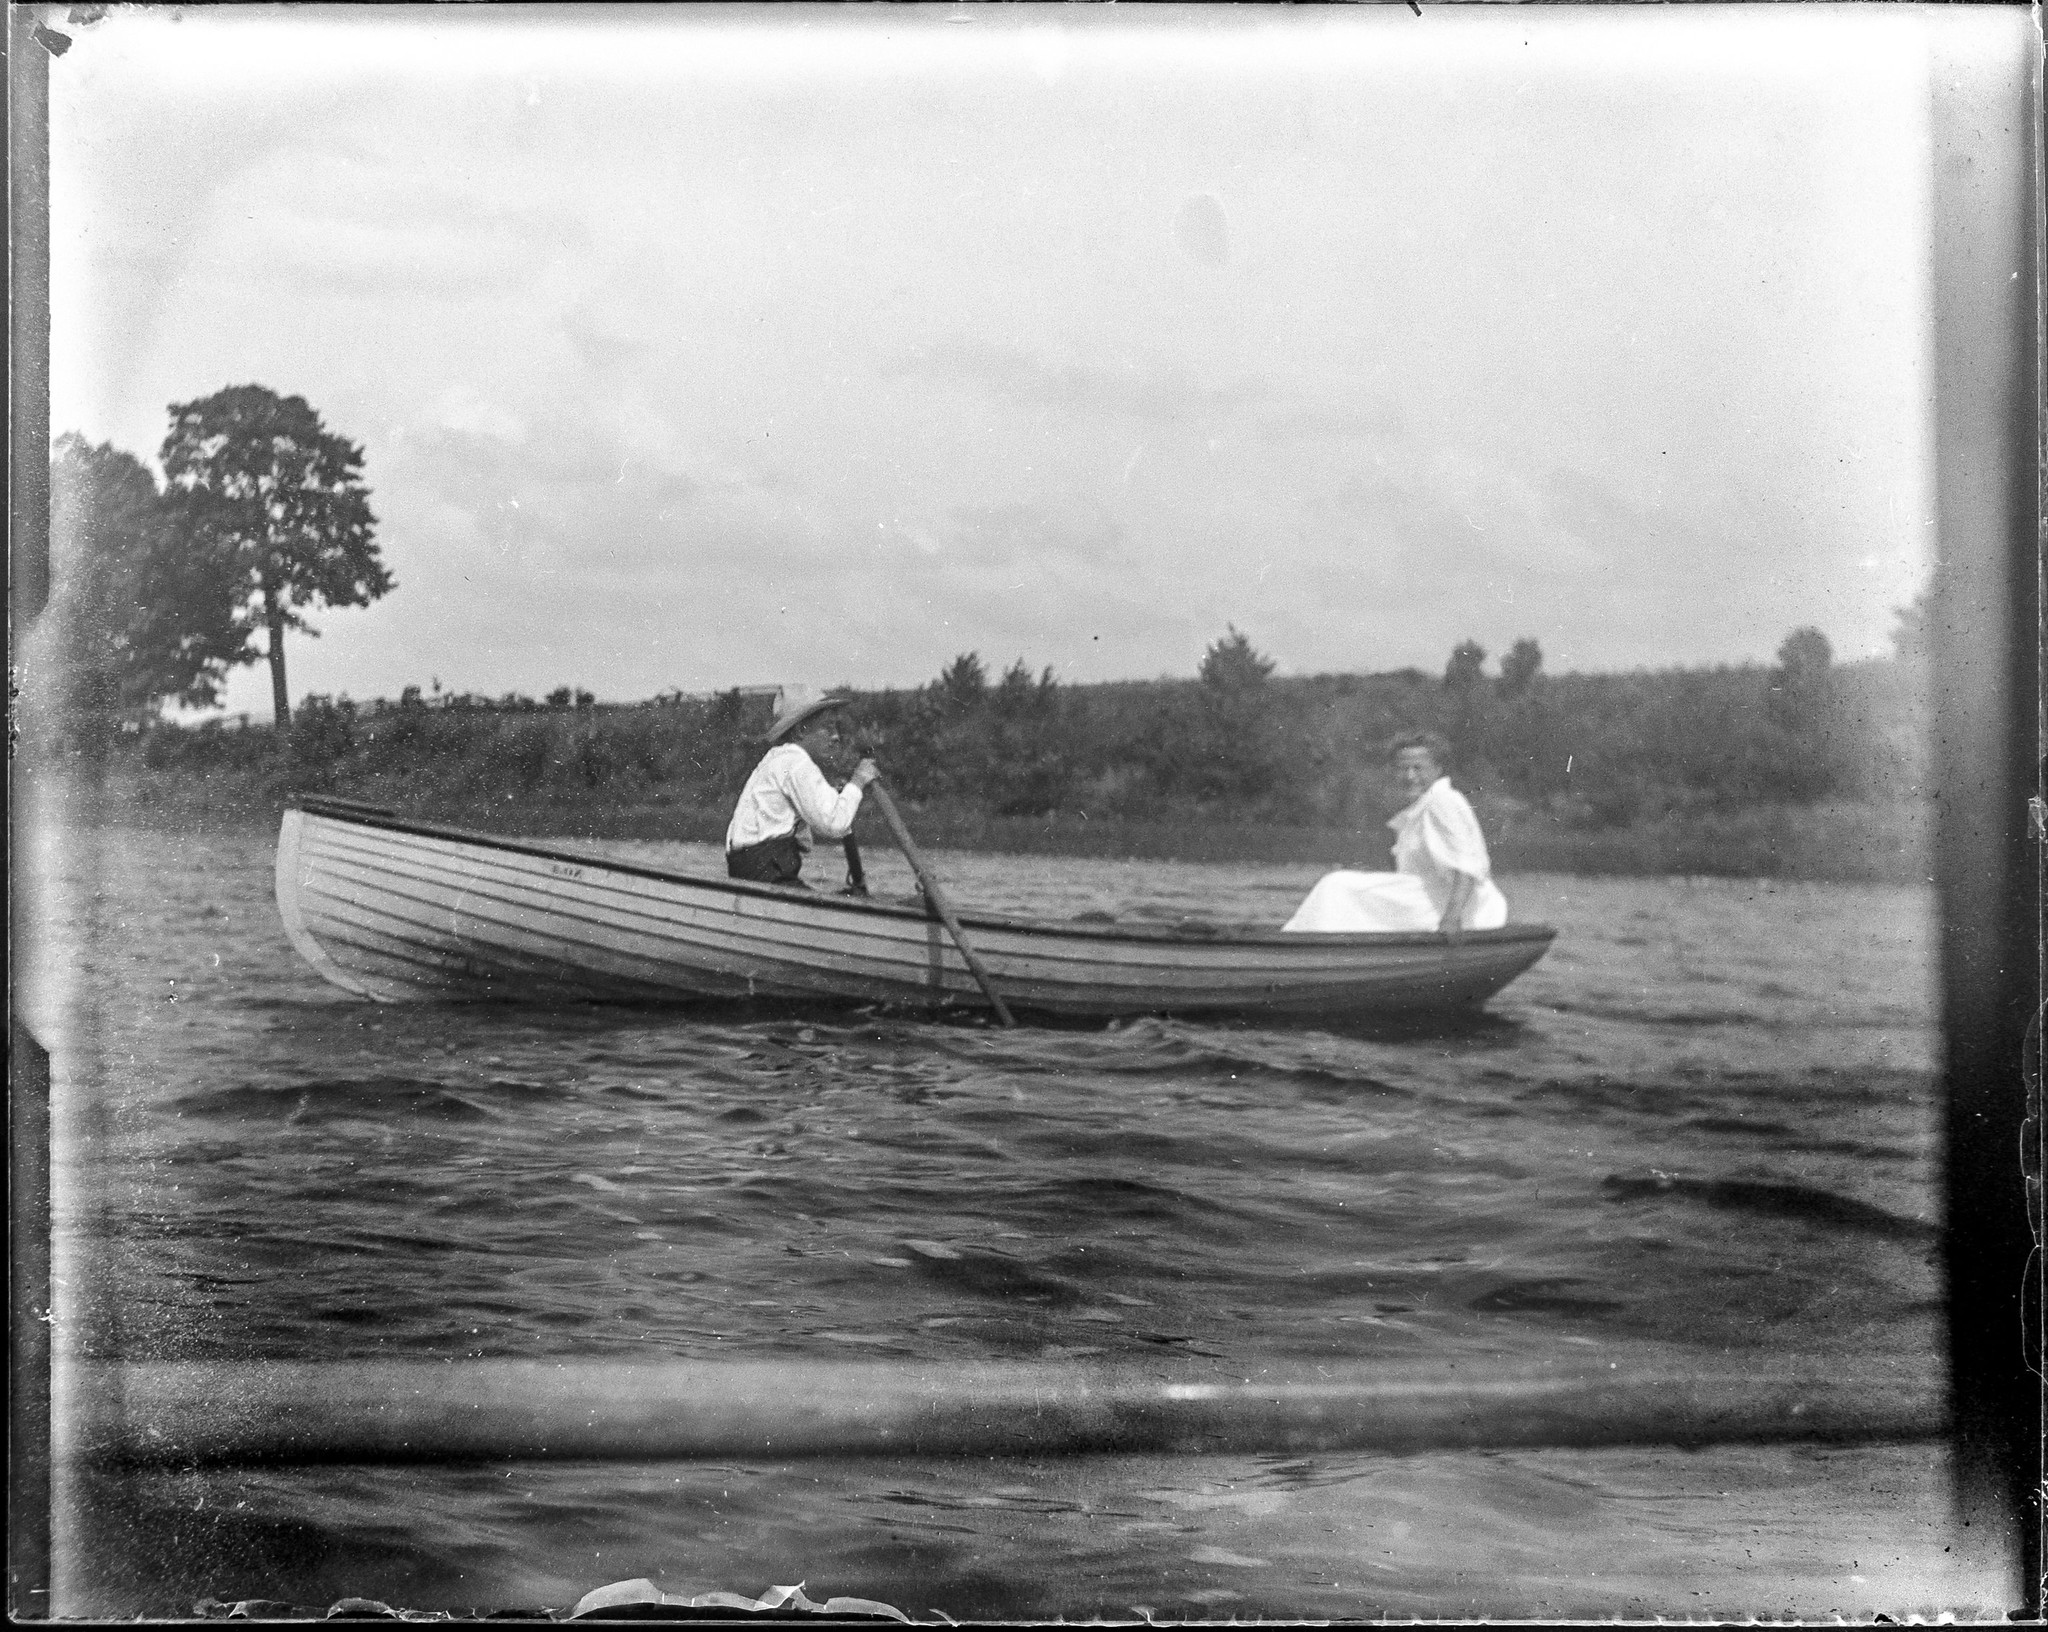 Boating Back in the Day